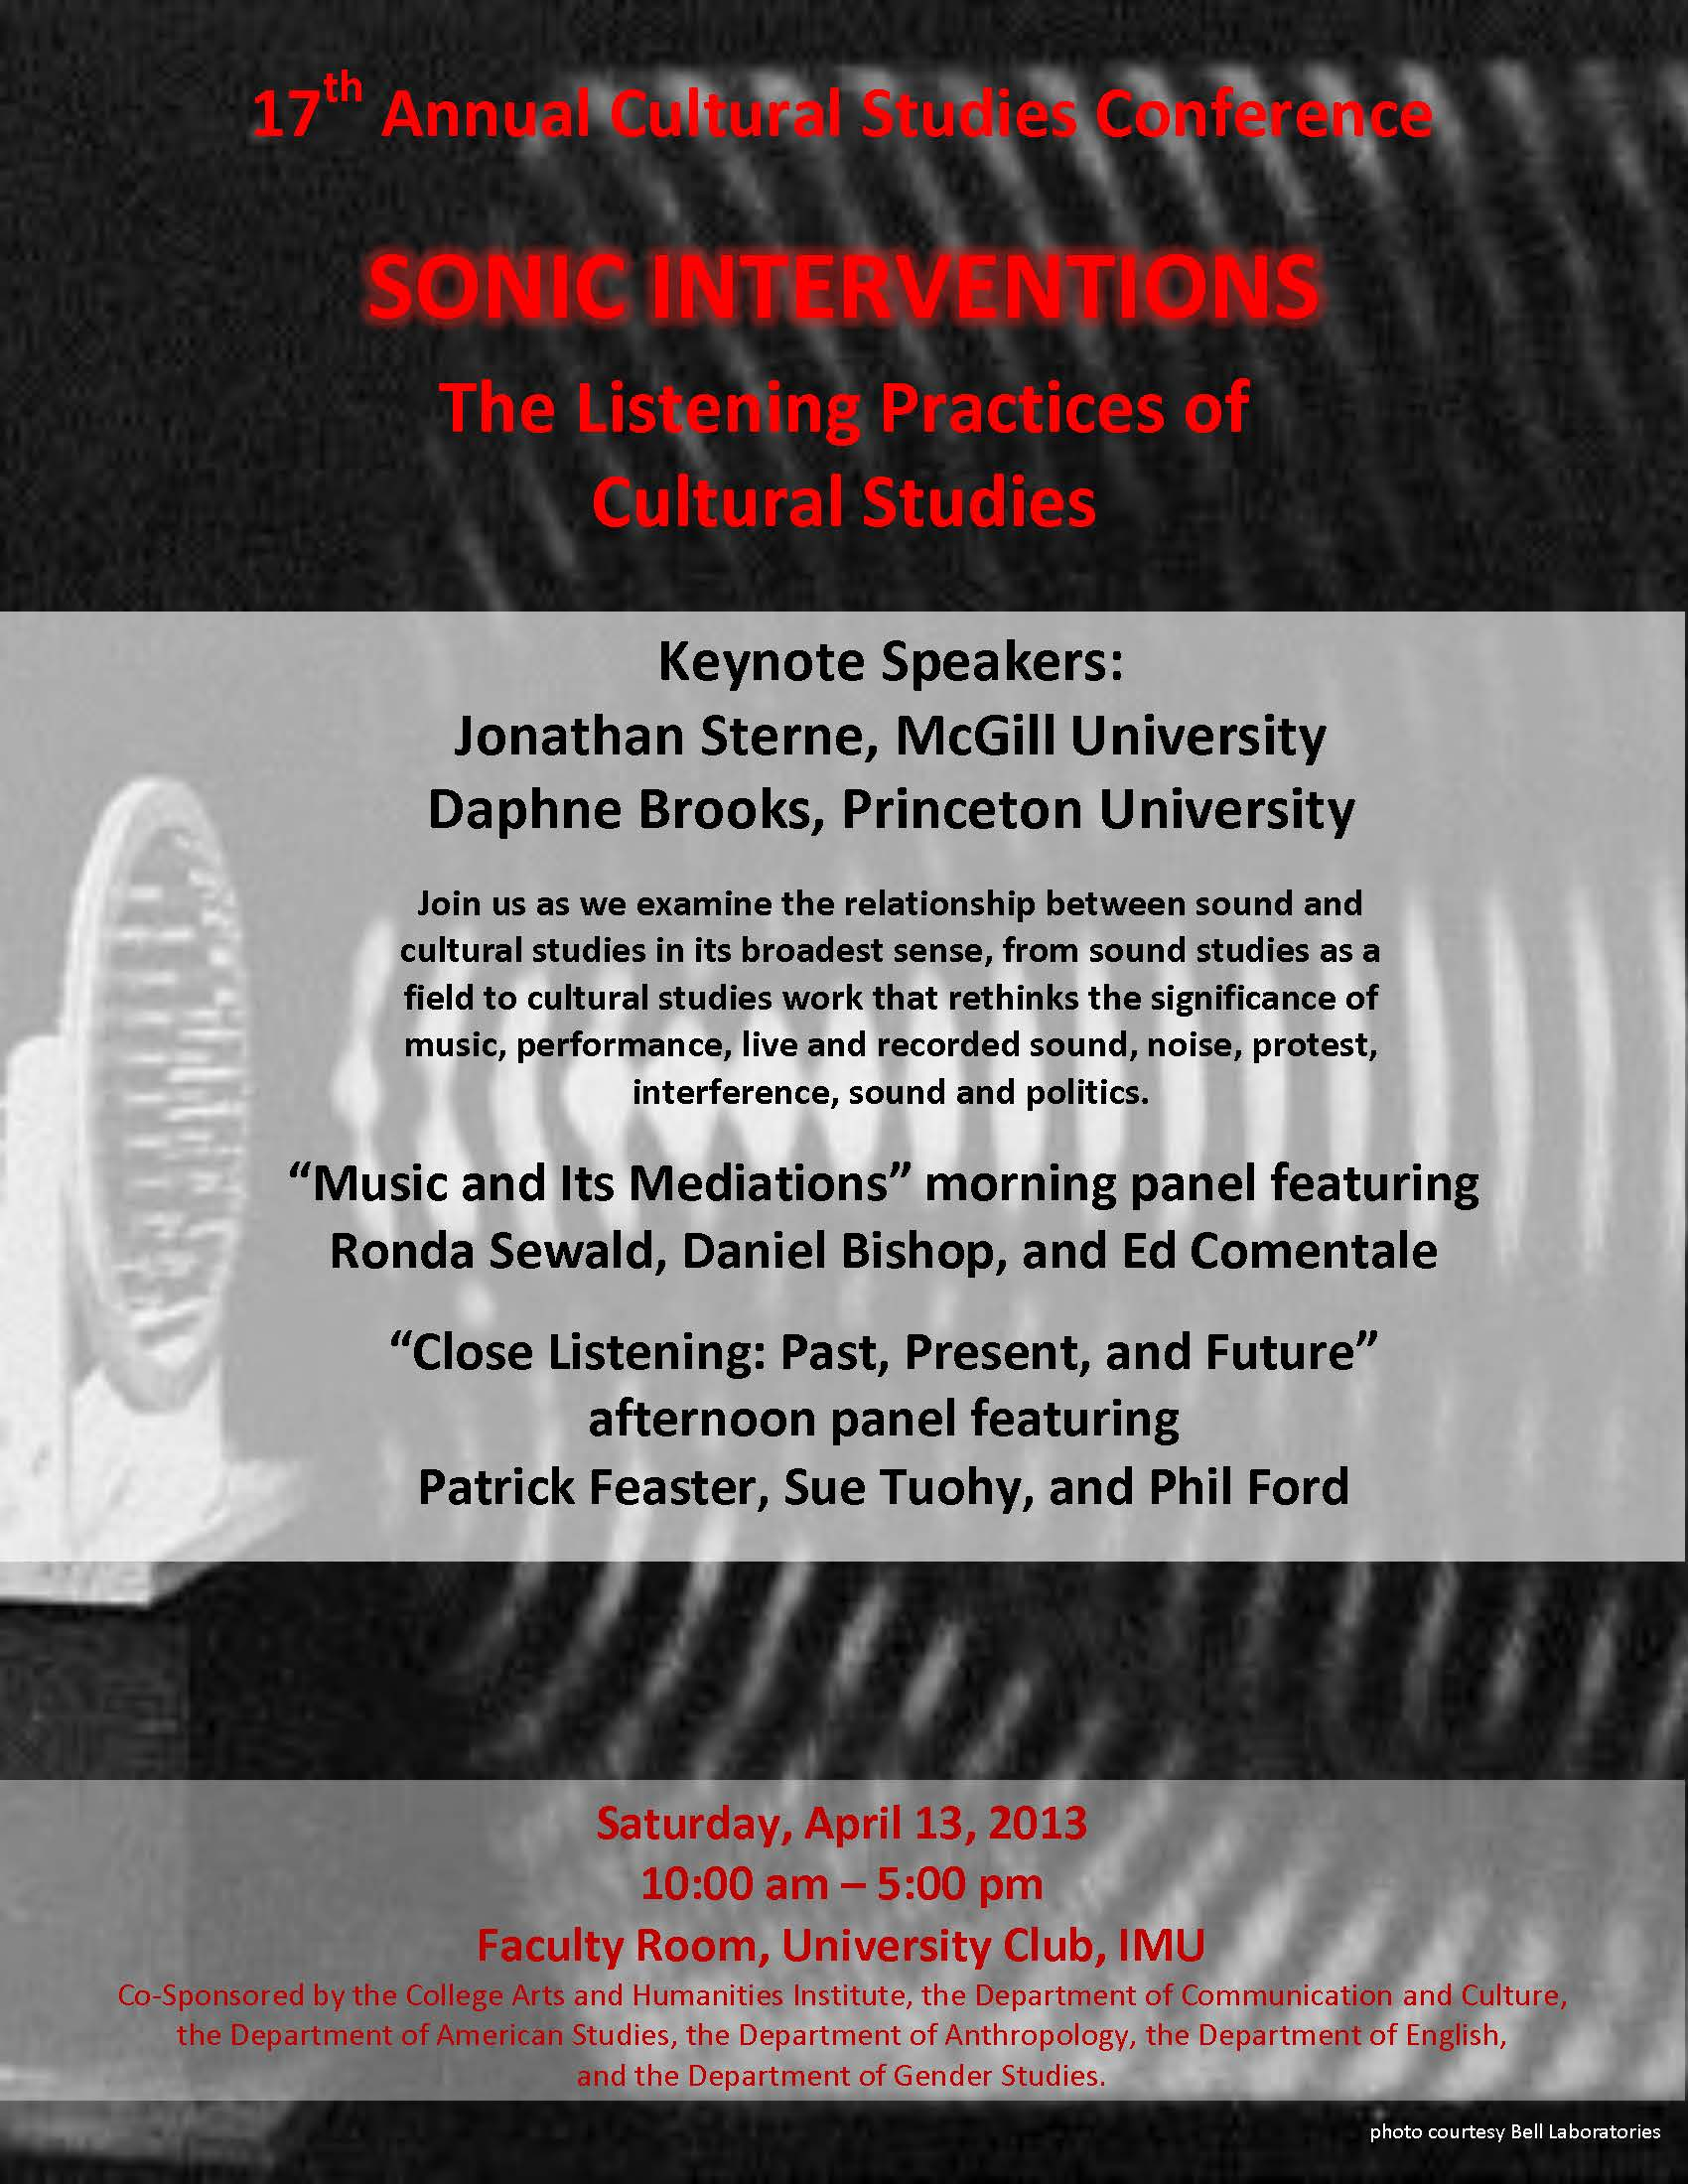 2013 Conference: Sonic Interventions